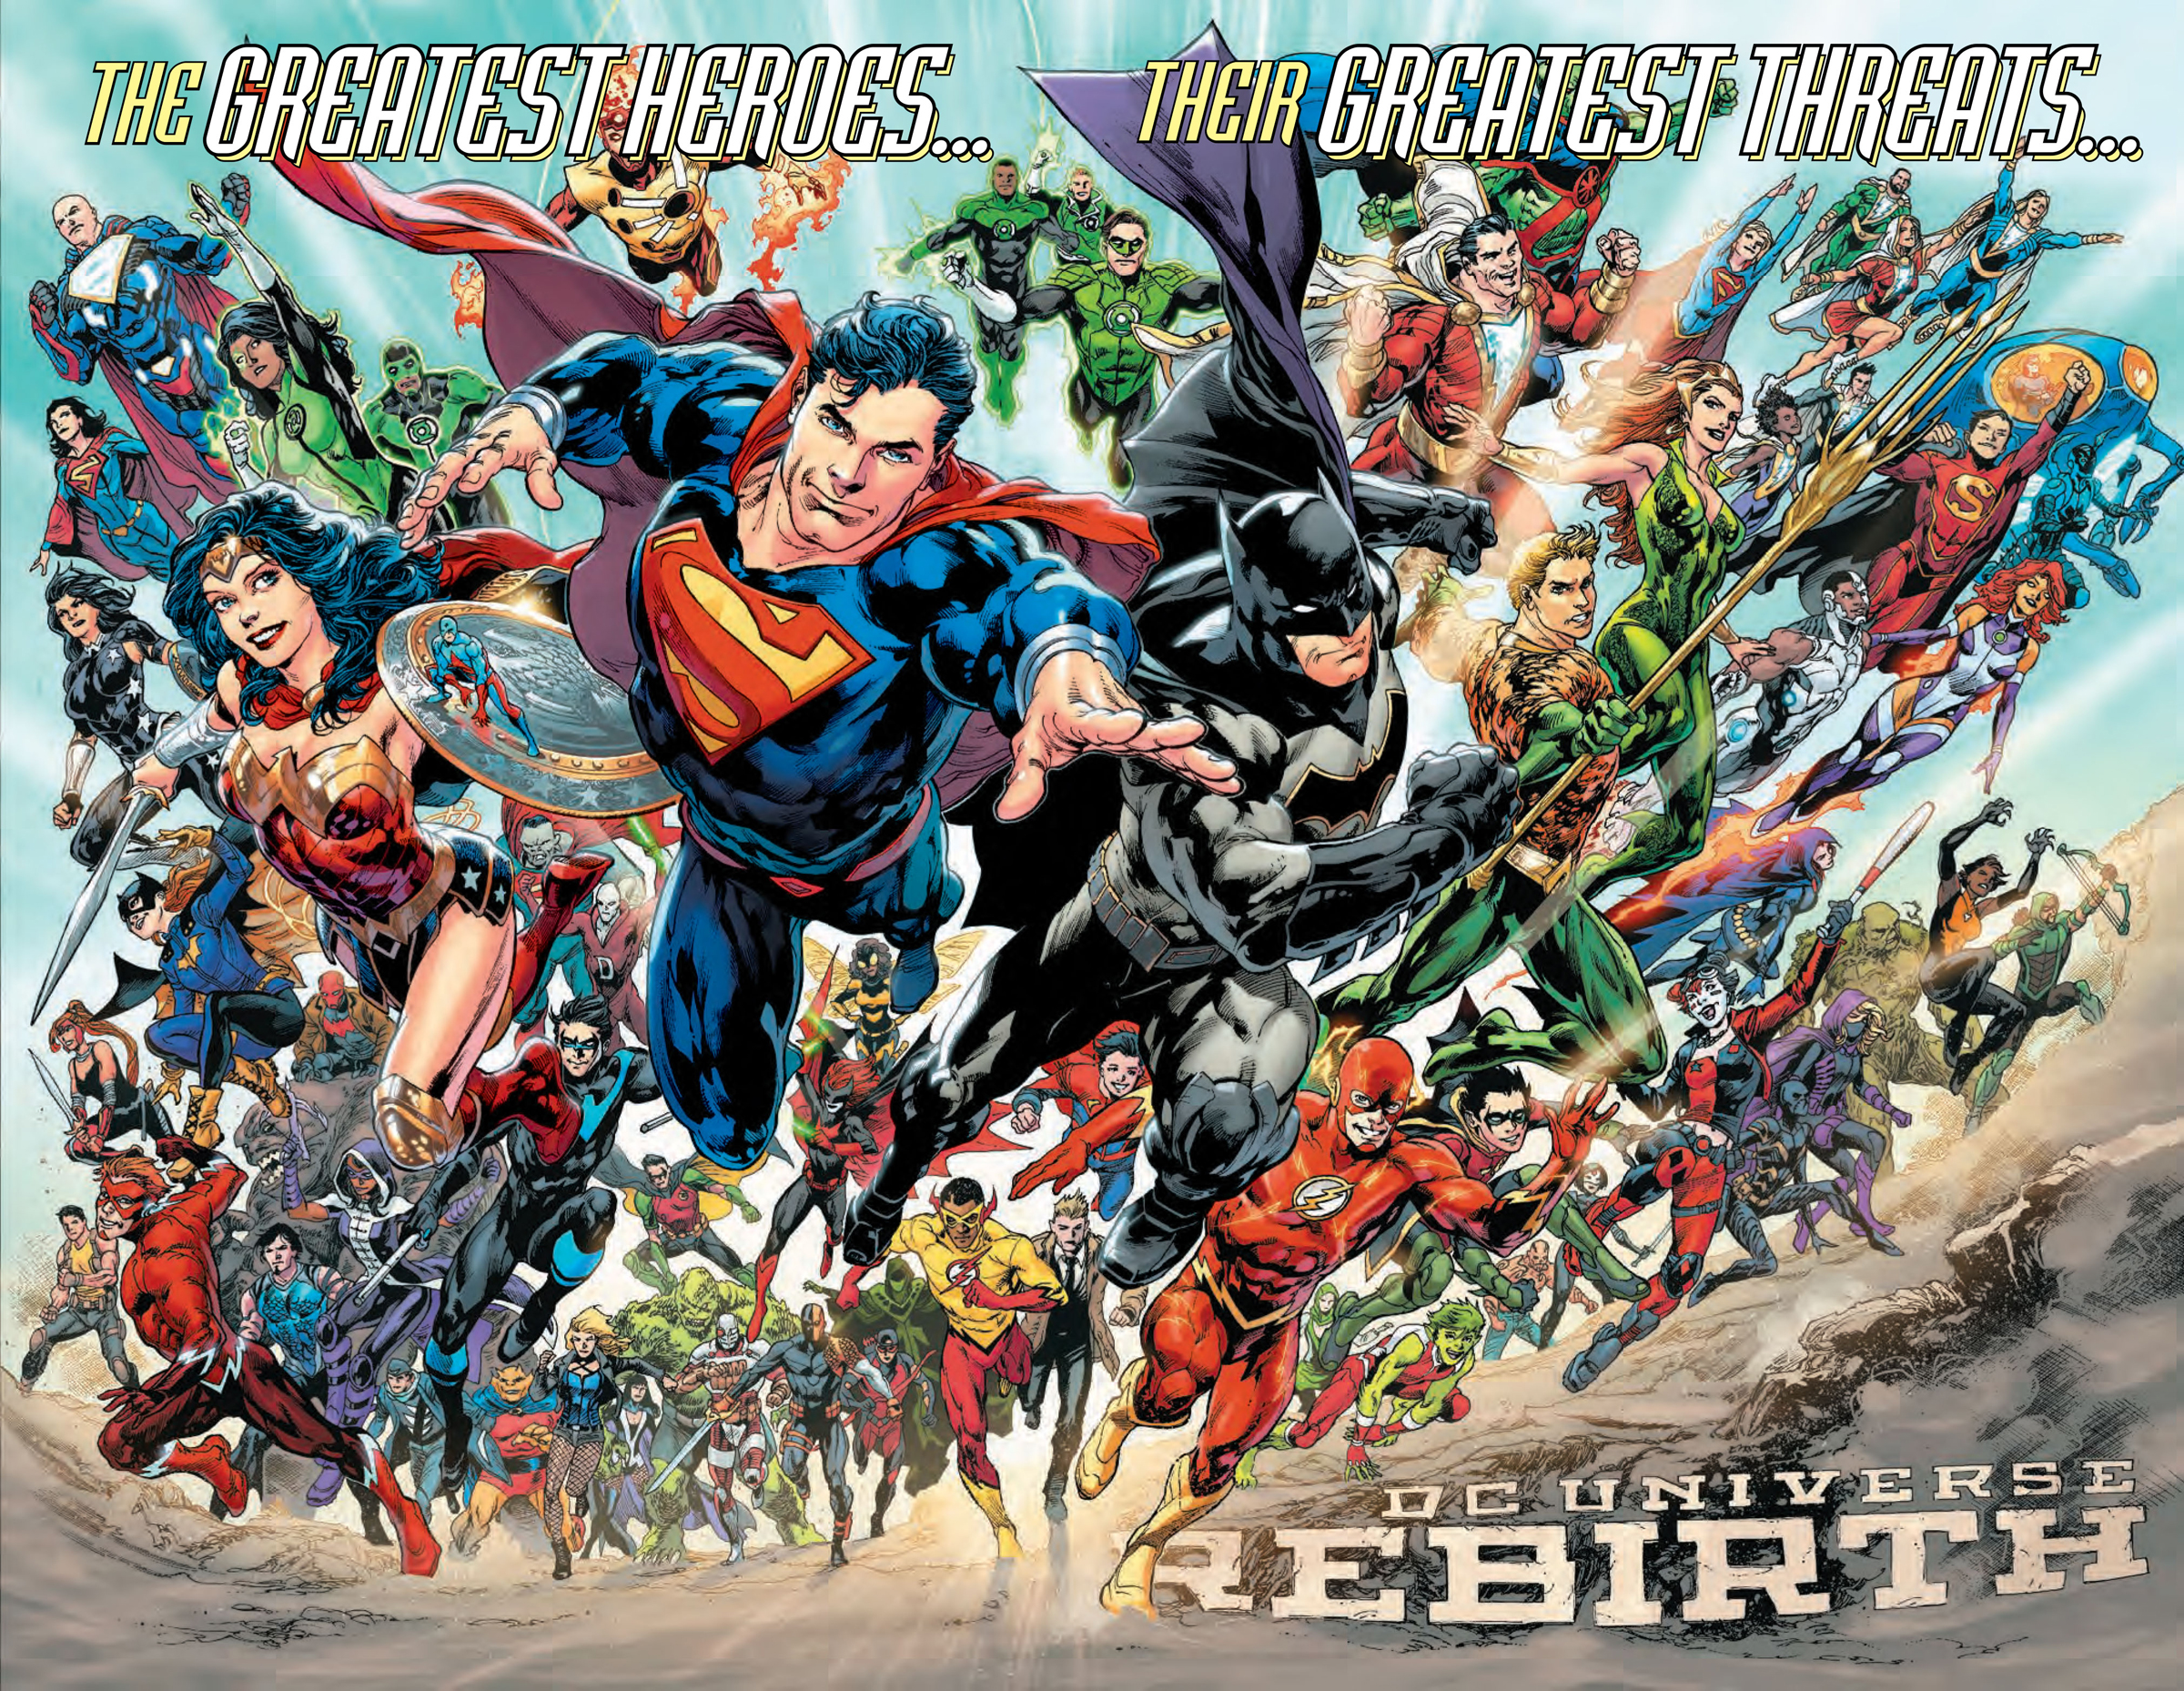 Rebirth - [Rumor] Warner Bros. estaría desarrollando 'Justice League: Rebirth'